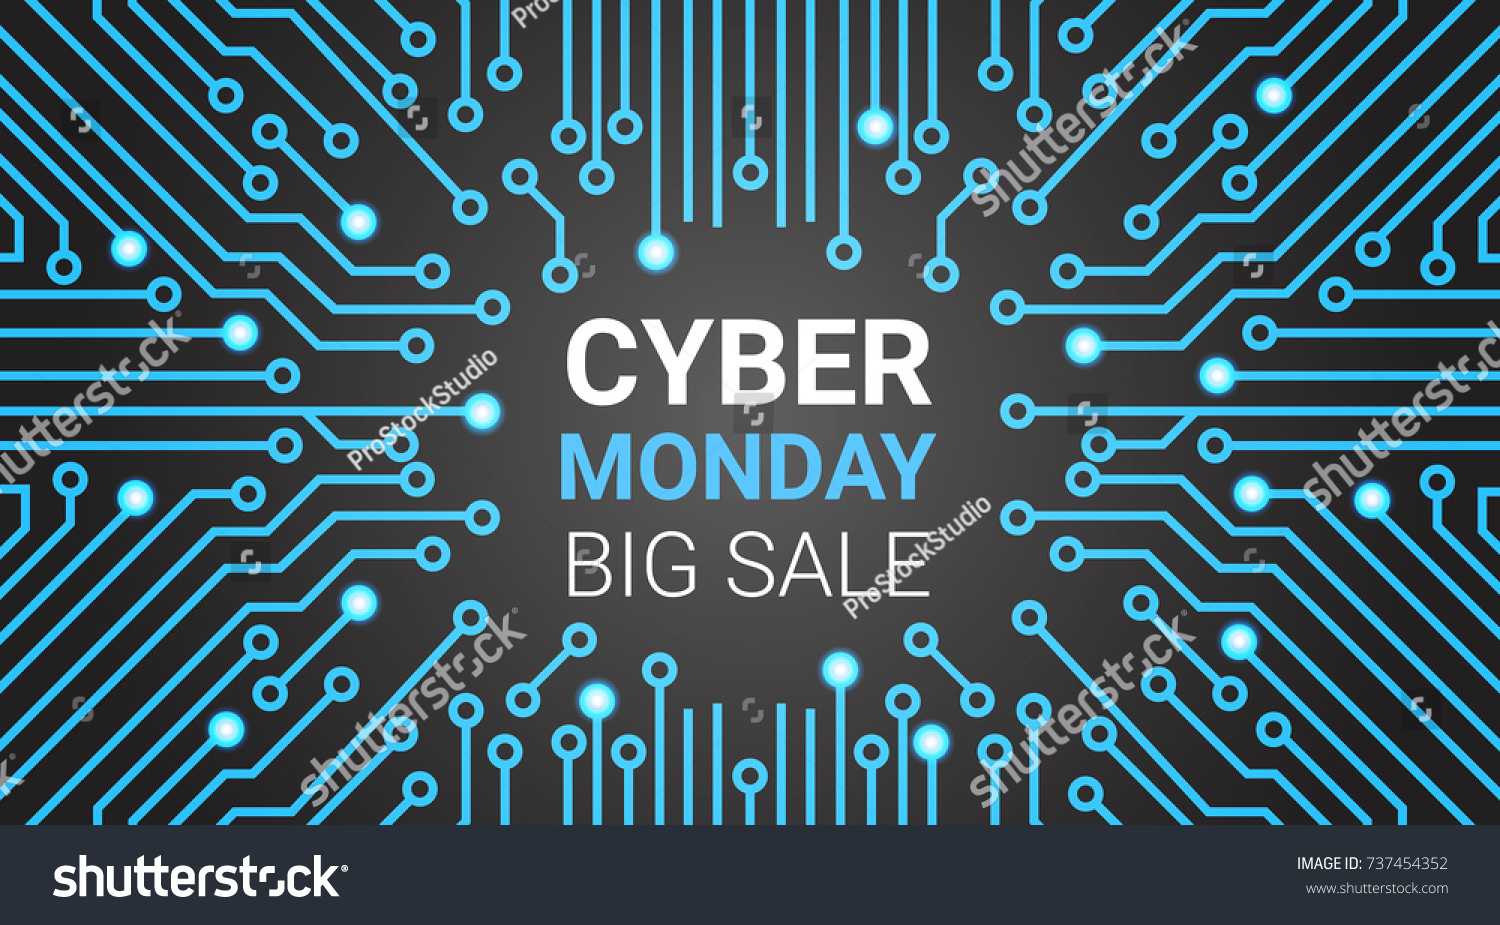 Cyber Monday Banner Circuit Background Big Stock Vector 737454352 ...